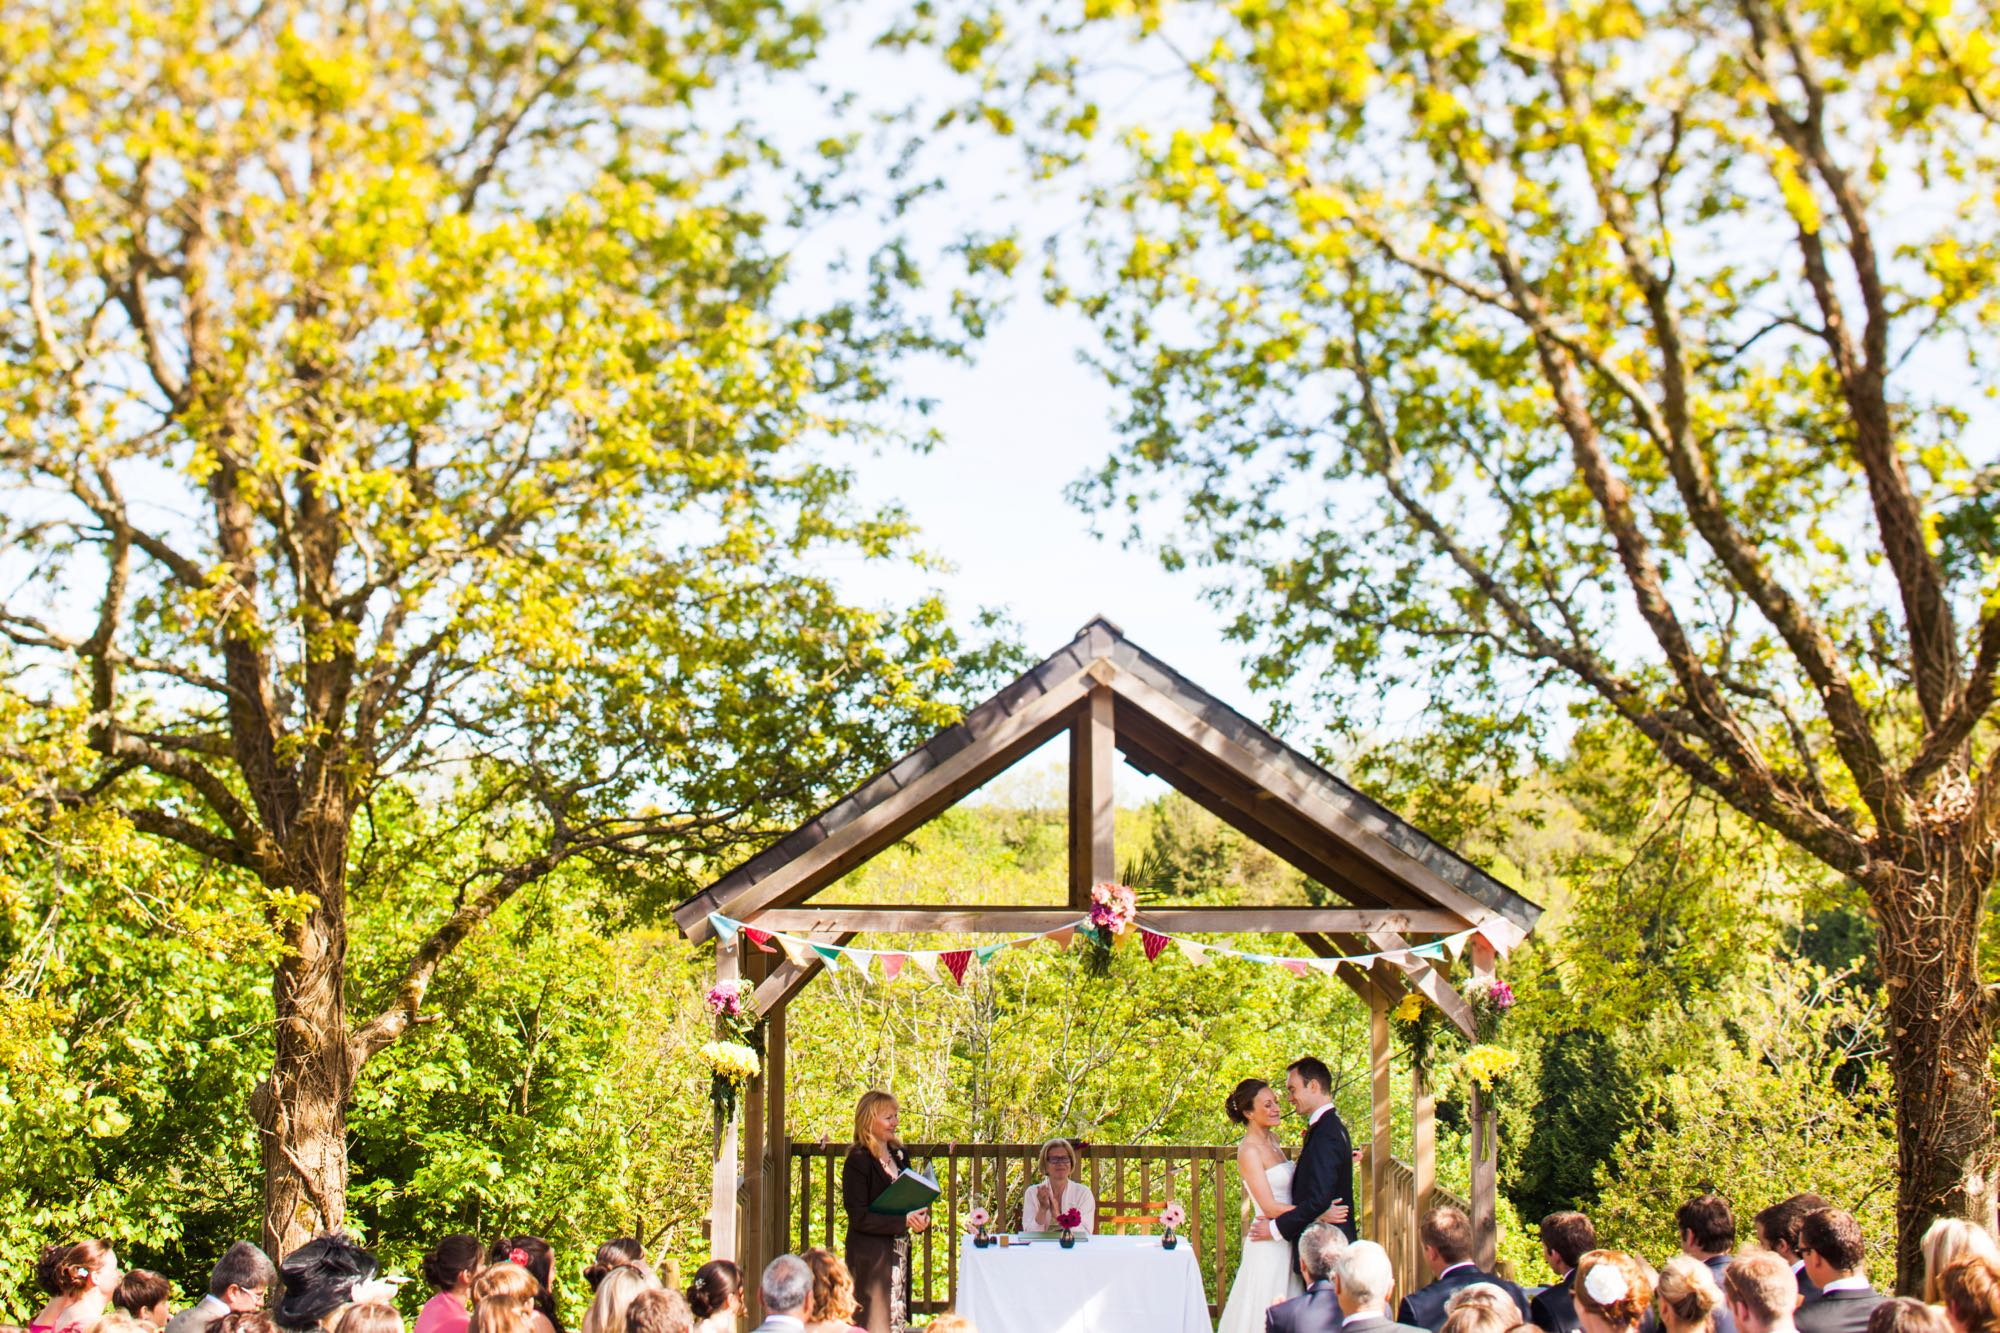 A couple exchanging vows under the Oak Arbour. The arbour is a wooden structure with four corner posts supporting a pitched roof. The arbour has a large Oak Tree on each side. The trees are in partial leaf. This photo is taken from a bit of a distance and most of the Oak Trees are in the frame. The couple are under the arbour with the registrar and there is a clothed table (white) also under the arbour. The arbour is decorated with bunting. The arbour is in the middle of the shot and the couple are standing in the right of the arbour. They are holding embracing and facing each other. The groom is on the right, the bride on the left. It is a spring day. The bride is wearing a white, full length, strapless, a-line dress. She has dark hair she is wearing up. The groom is wearing a dark suit. You can see top of their guests heads as they sit in front of the arbour in two columns of rows of seats.. The guests are looking at the couple towards the arbour and have their backs to the camera. You can seee the registrar holding a book in the right hand corner of the arbour and there is a white, clothed table under the arbour.